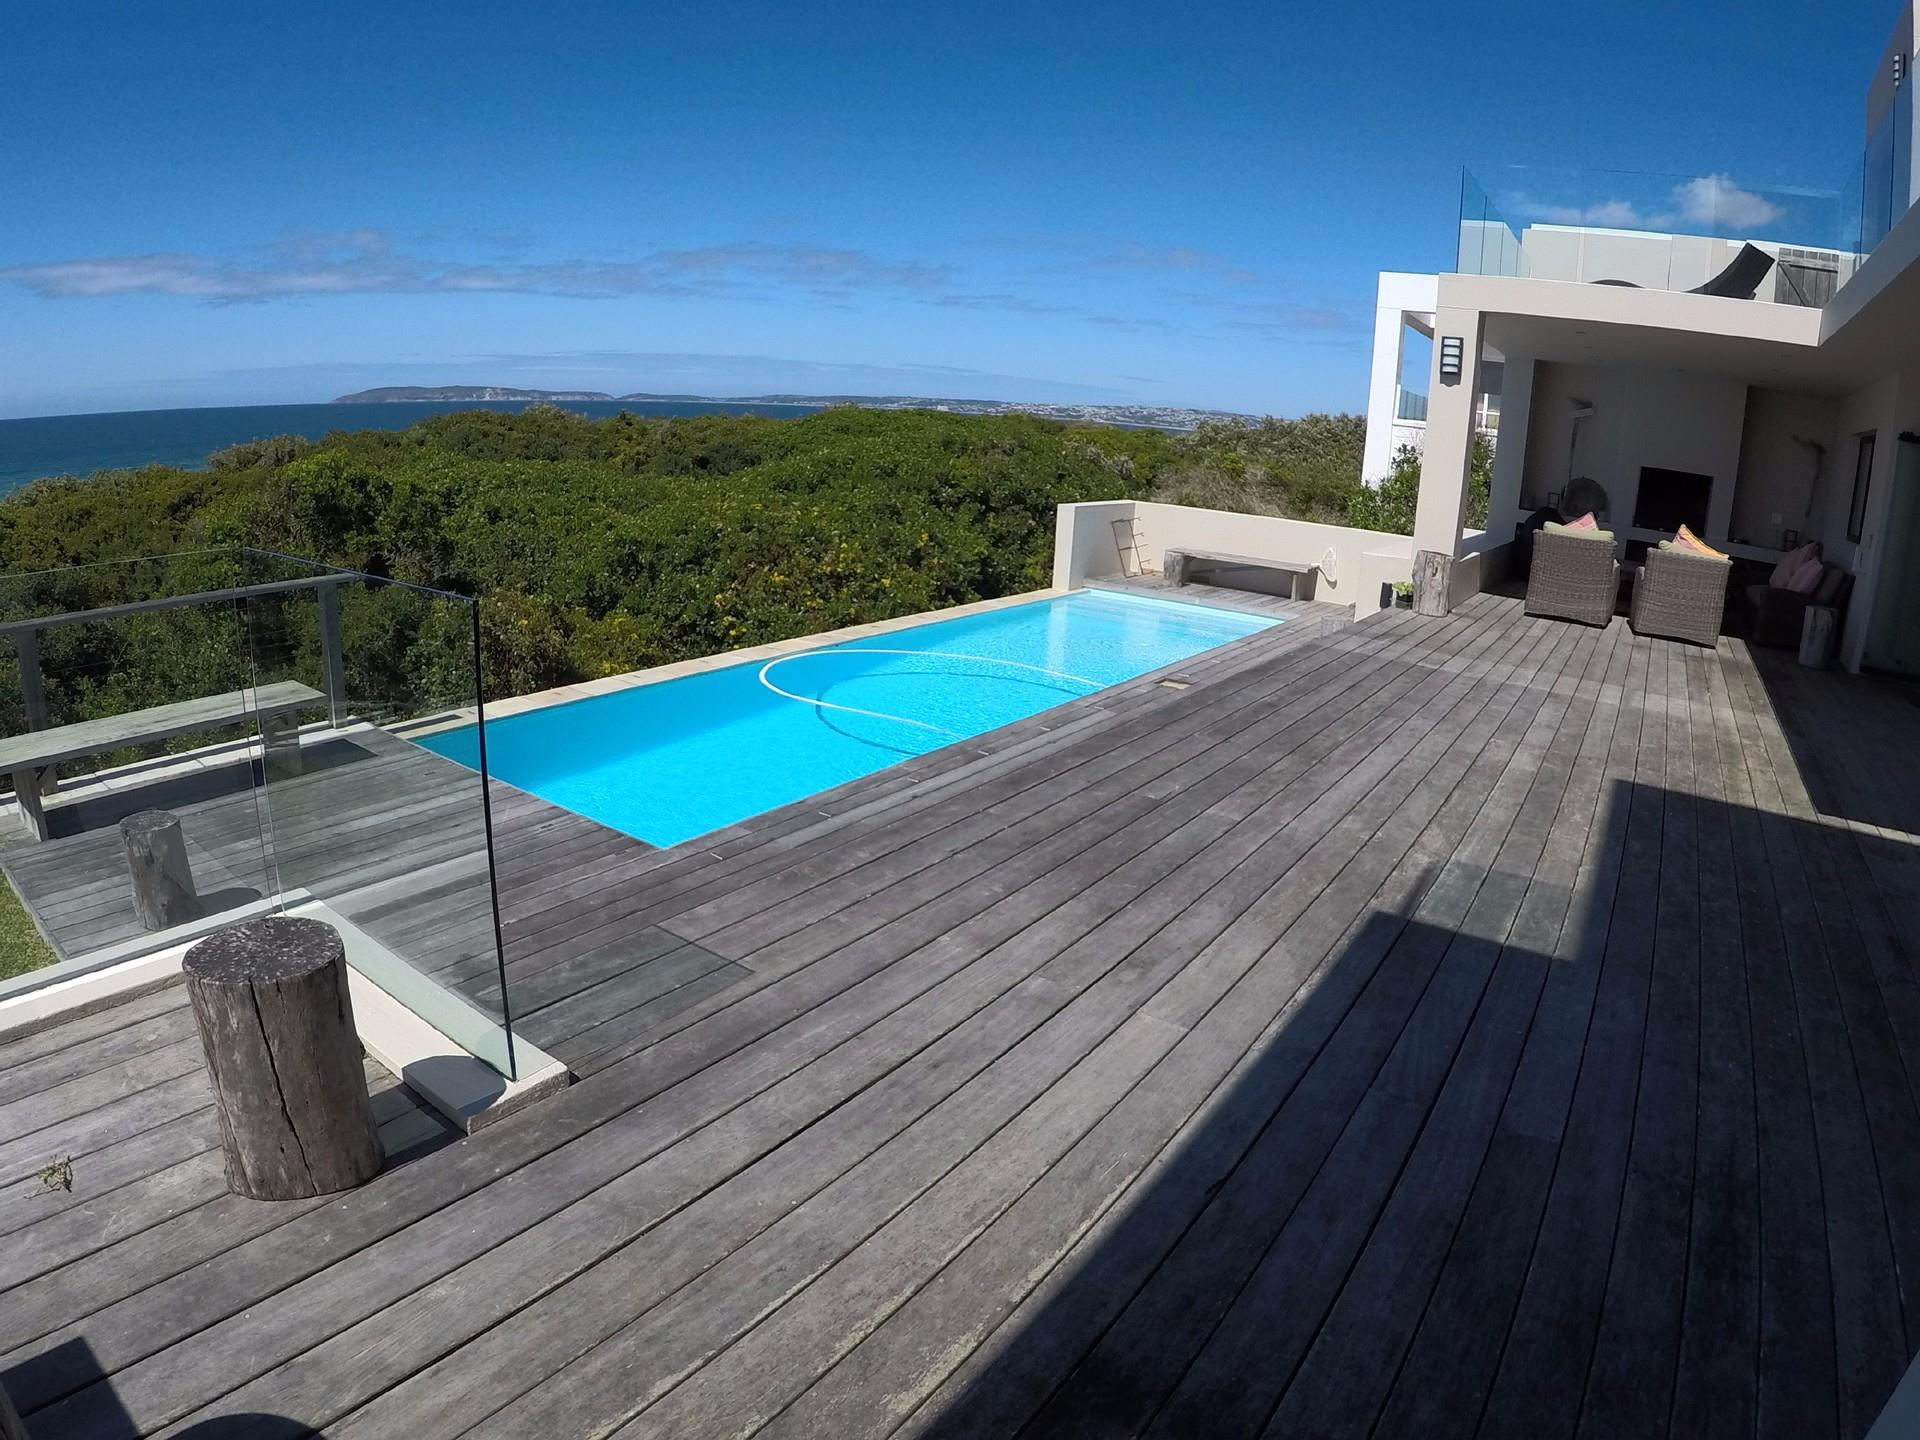 304/78 Whales Haven, Keurbooms, Plettenberg Bay - ZAF (photo 1)